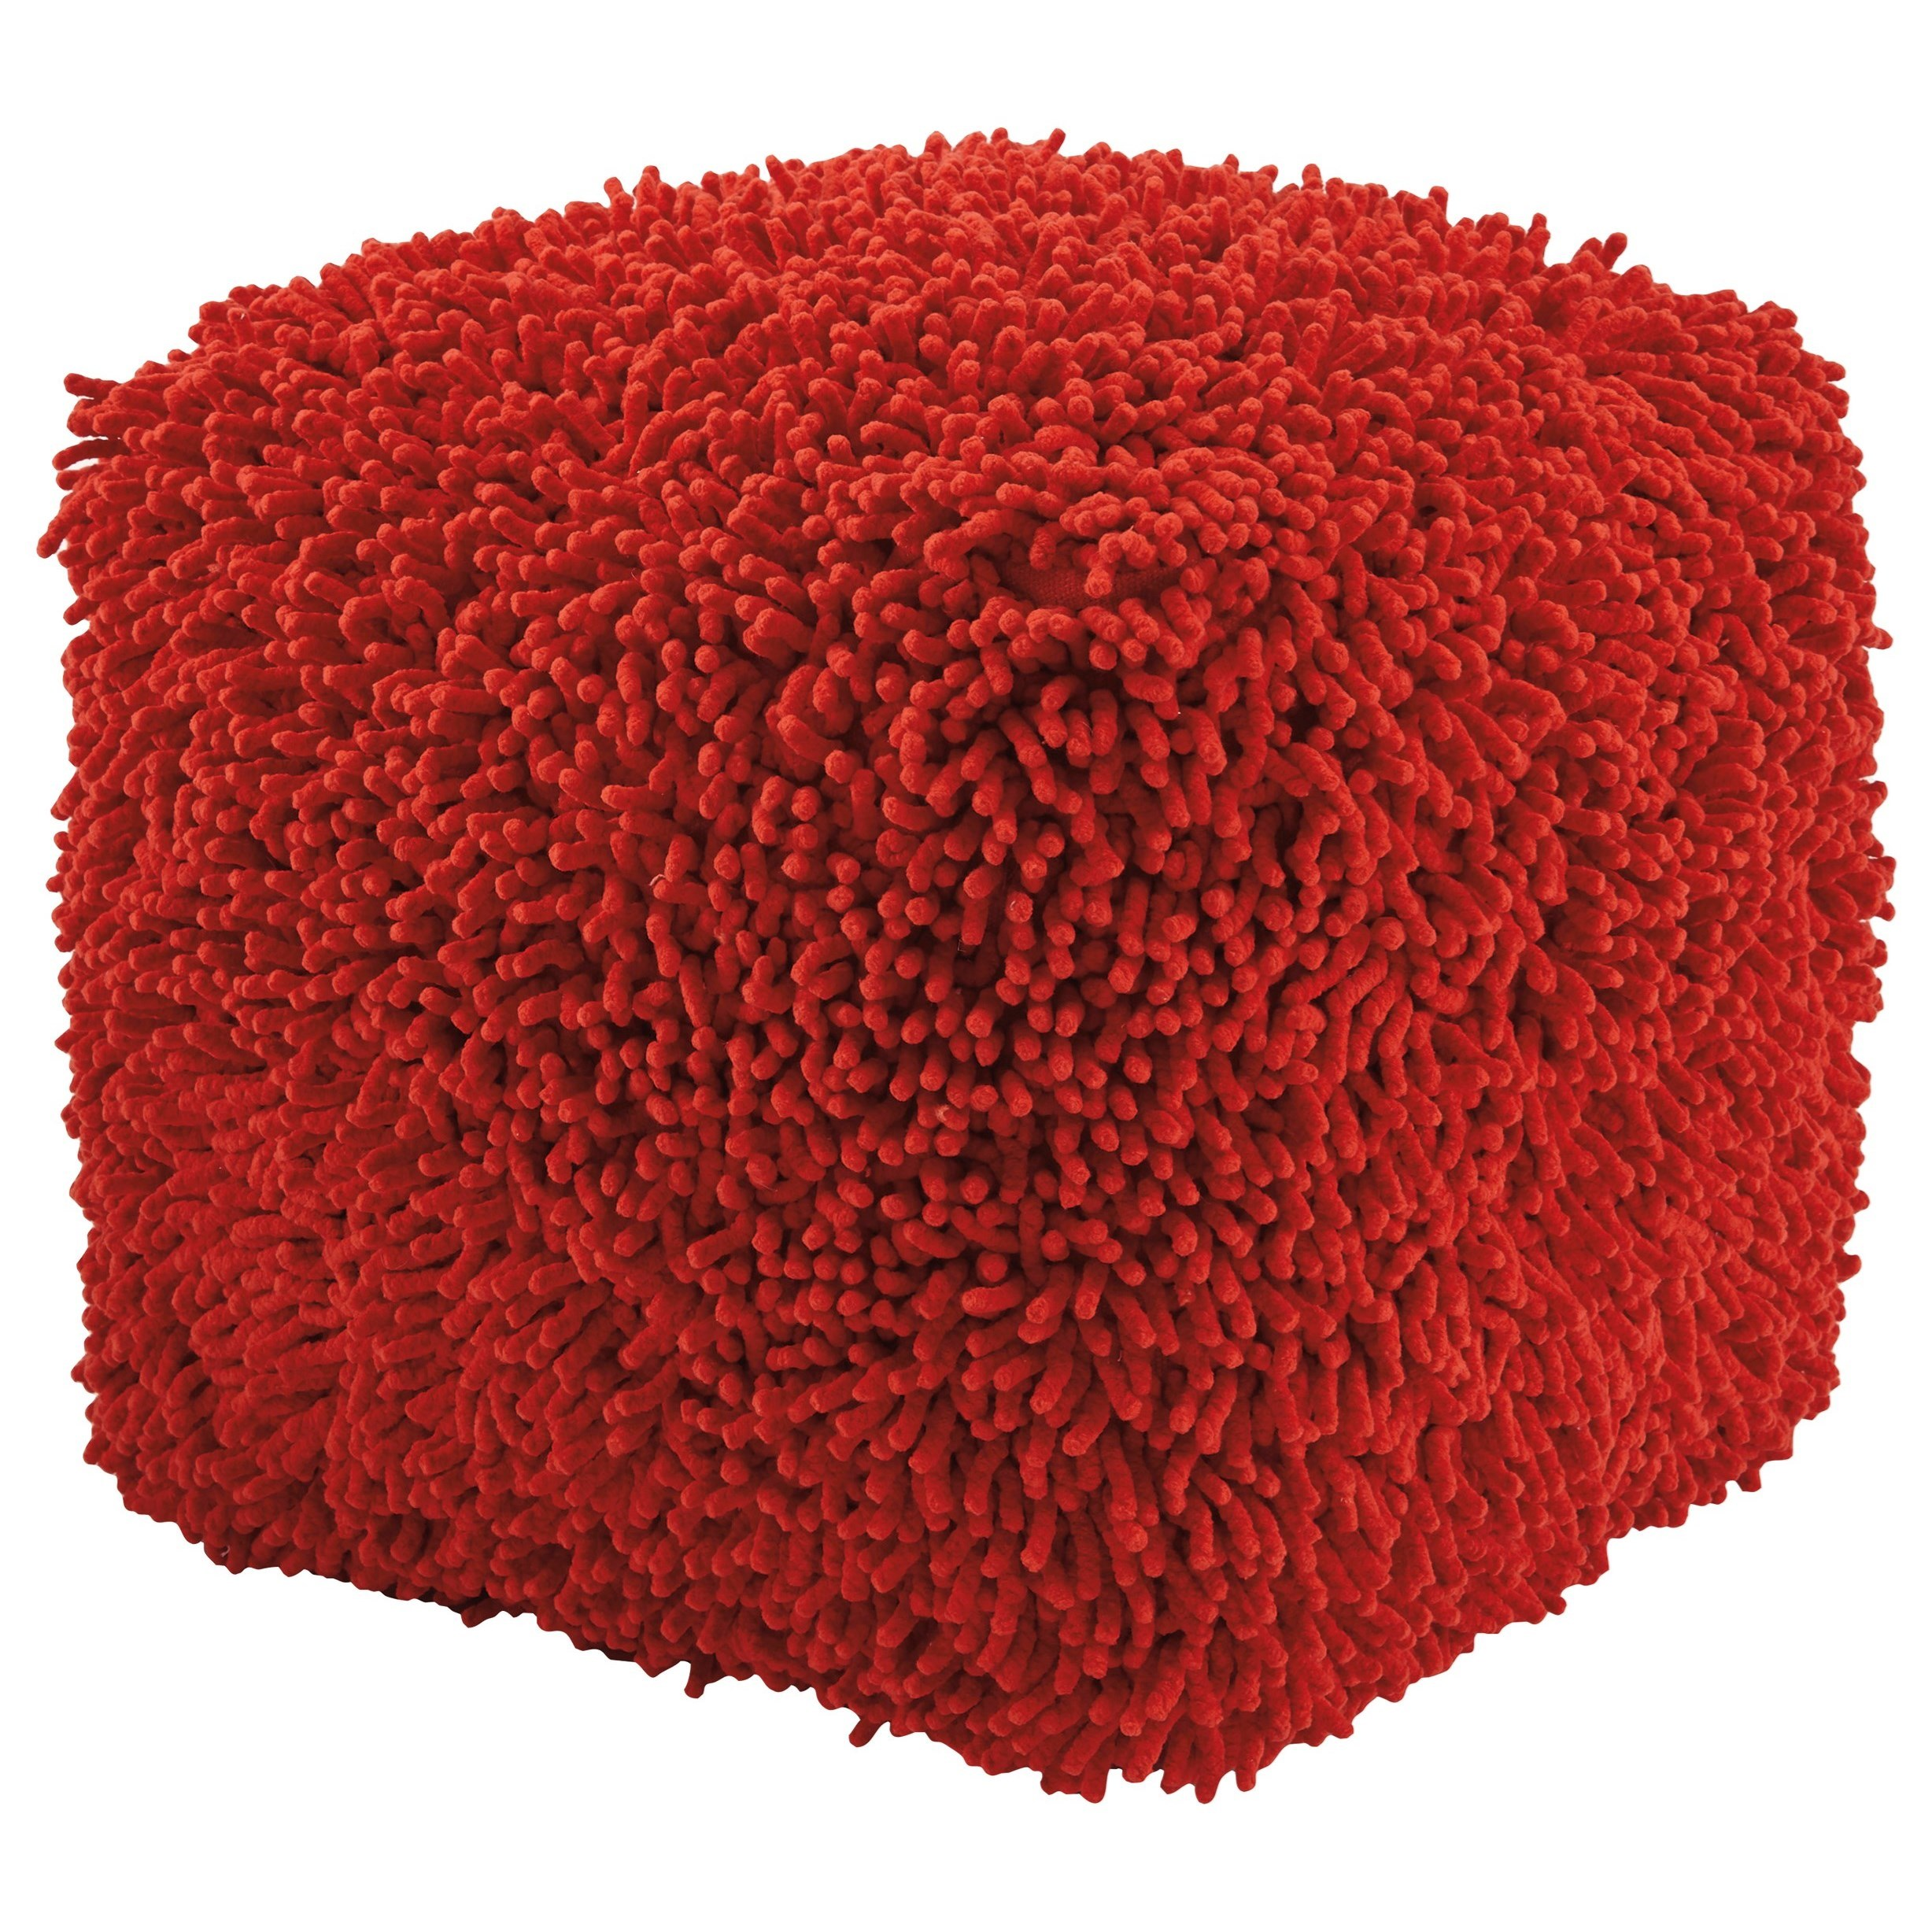 Signature Design by Ashley Poufs Taisce - Red Pouf - Item Number: A1000562